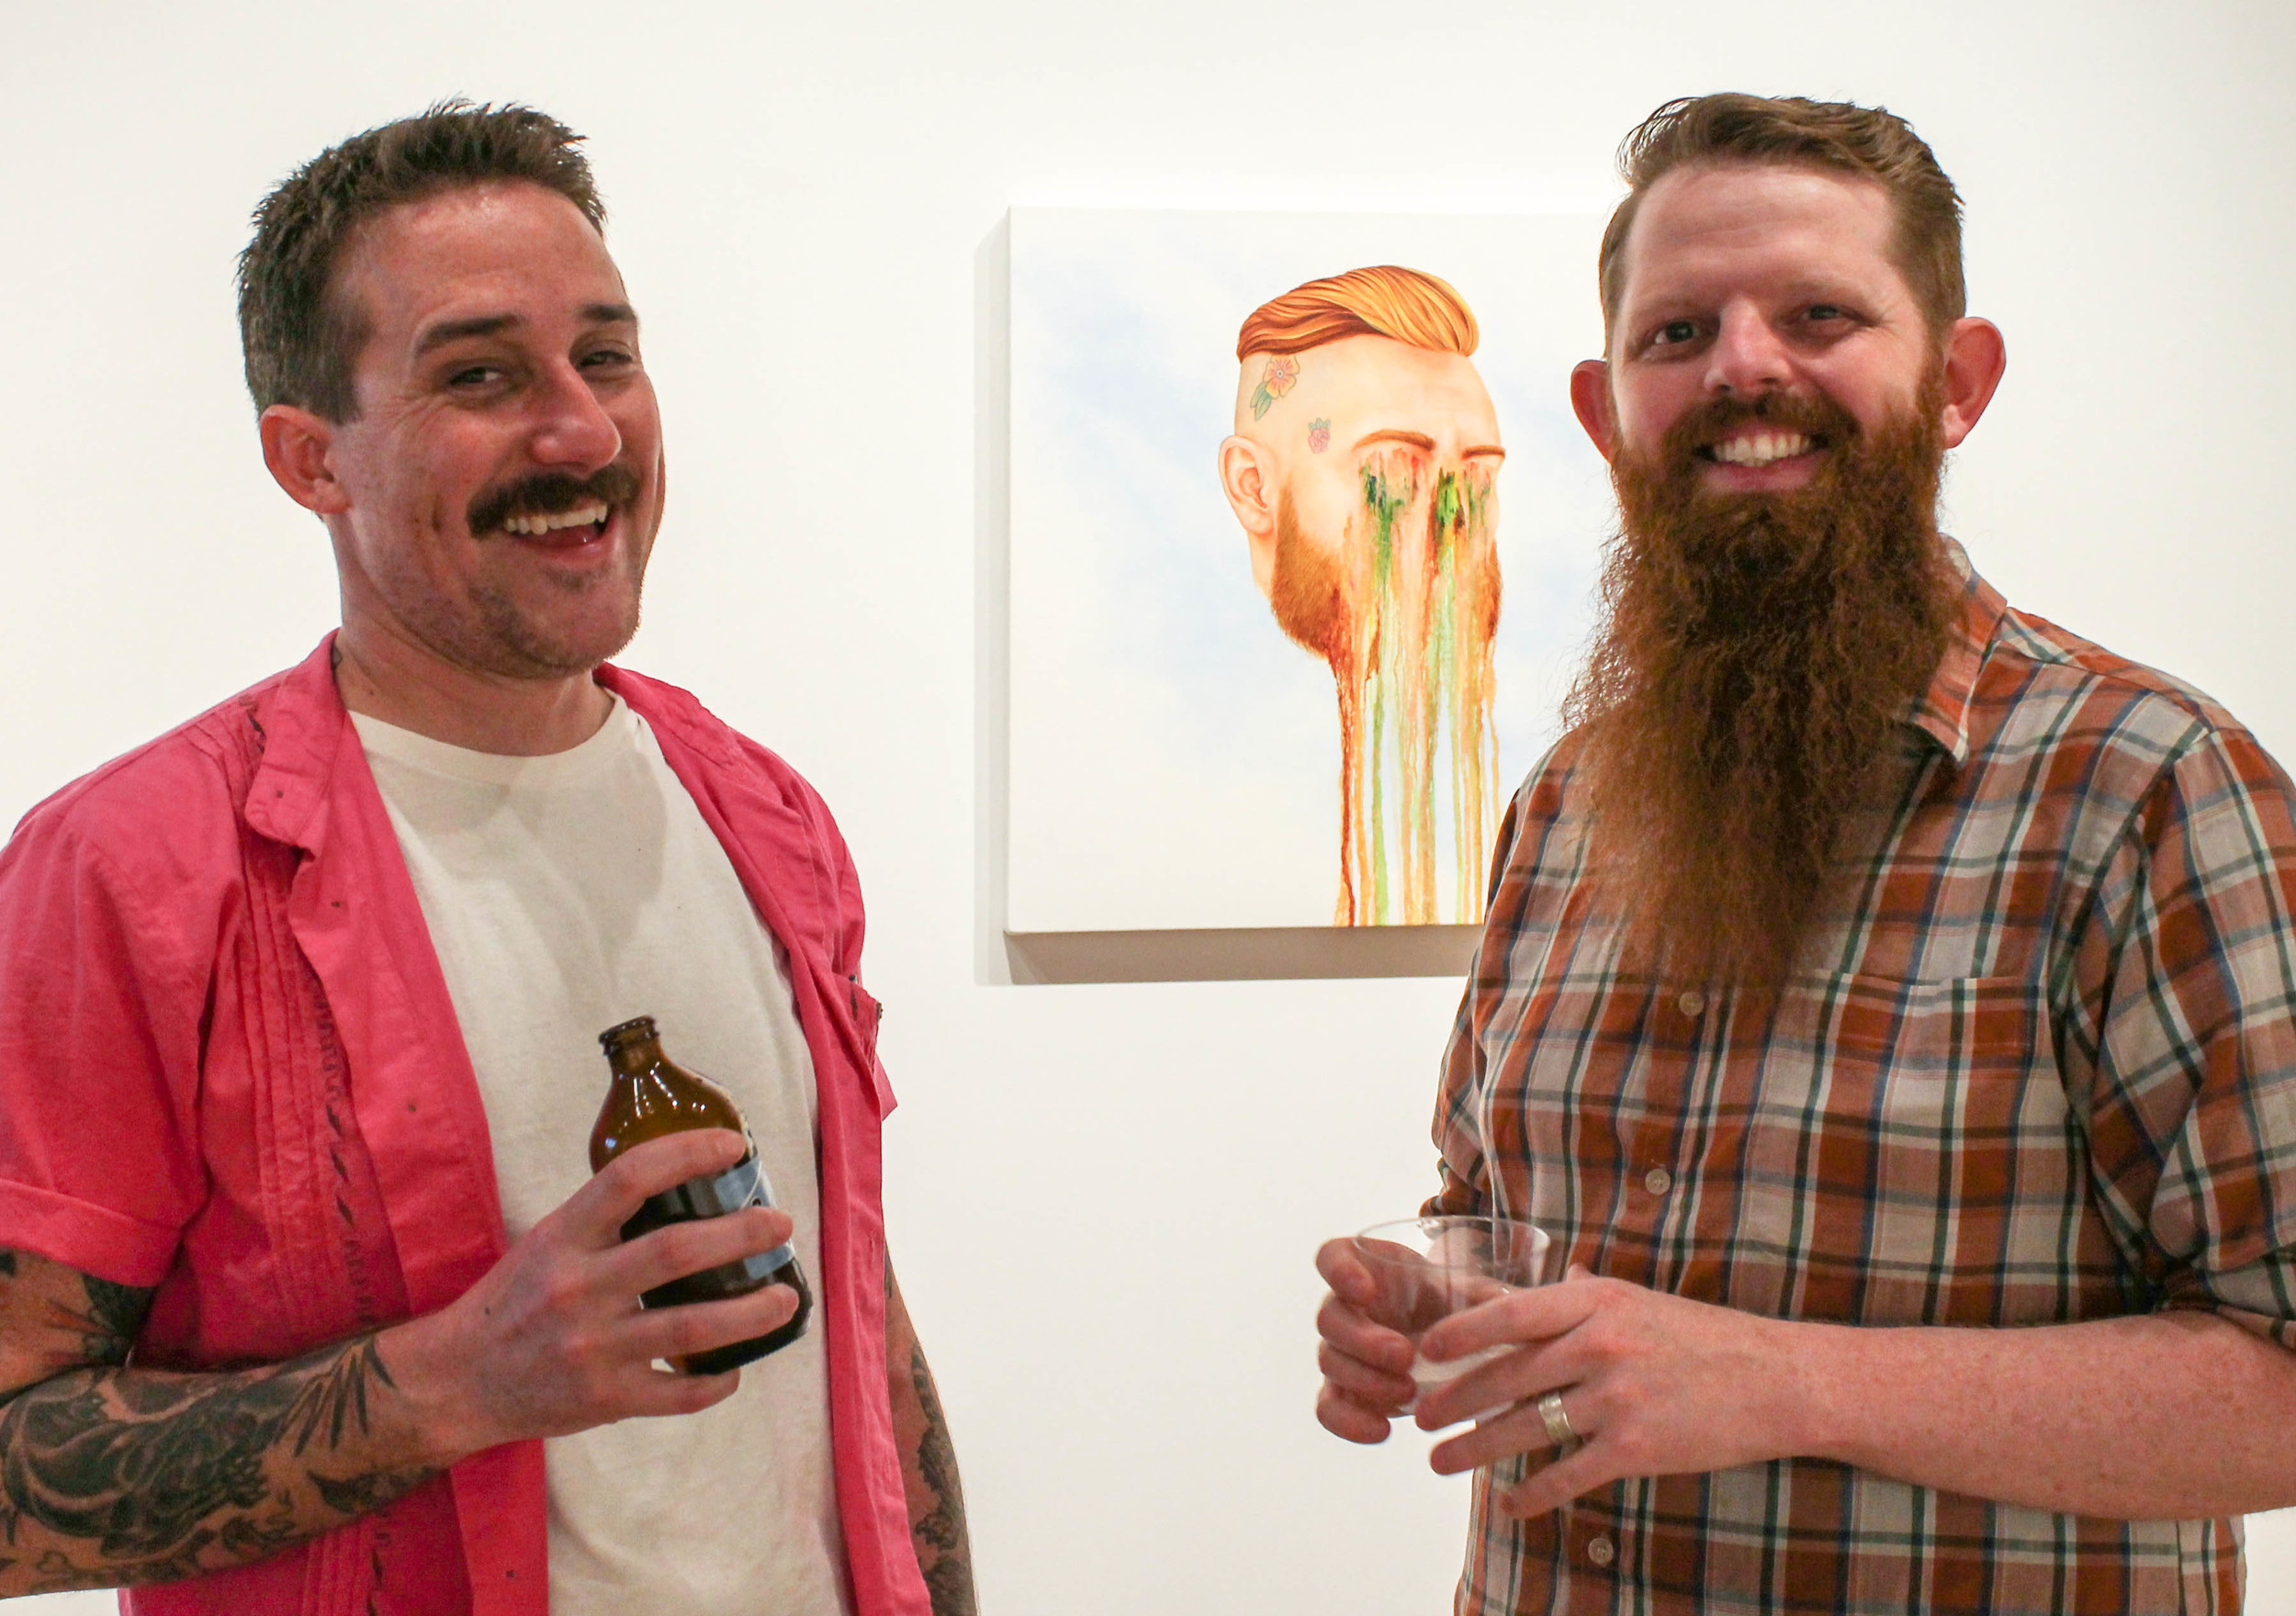 Artists Jeff P. and Neil M. Perry